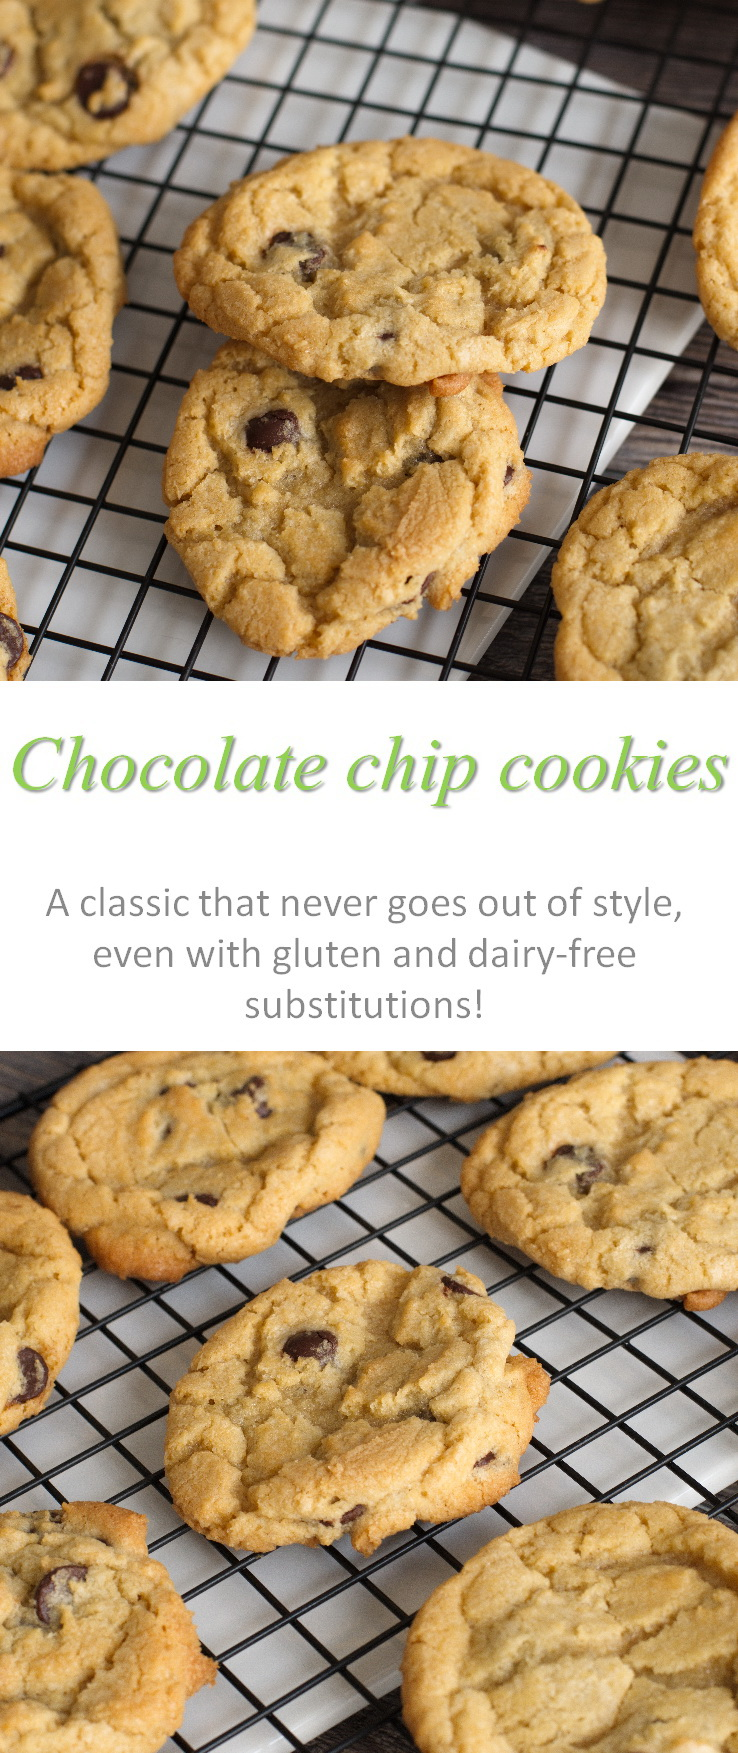 A basic recipe for chocolate chip cookies - works well every time, even with gluten and dairy free substitutions! #cookies